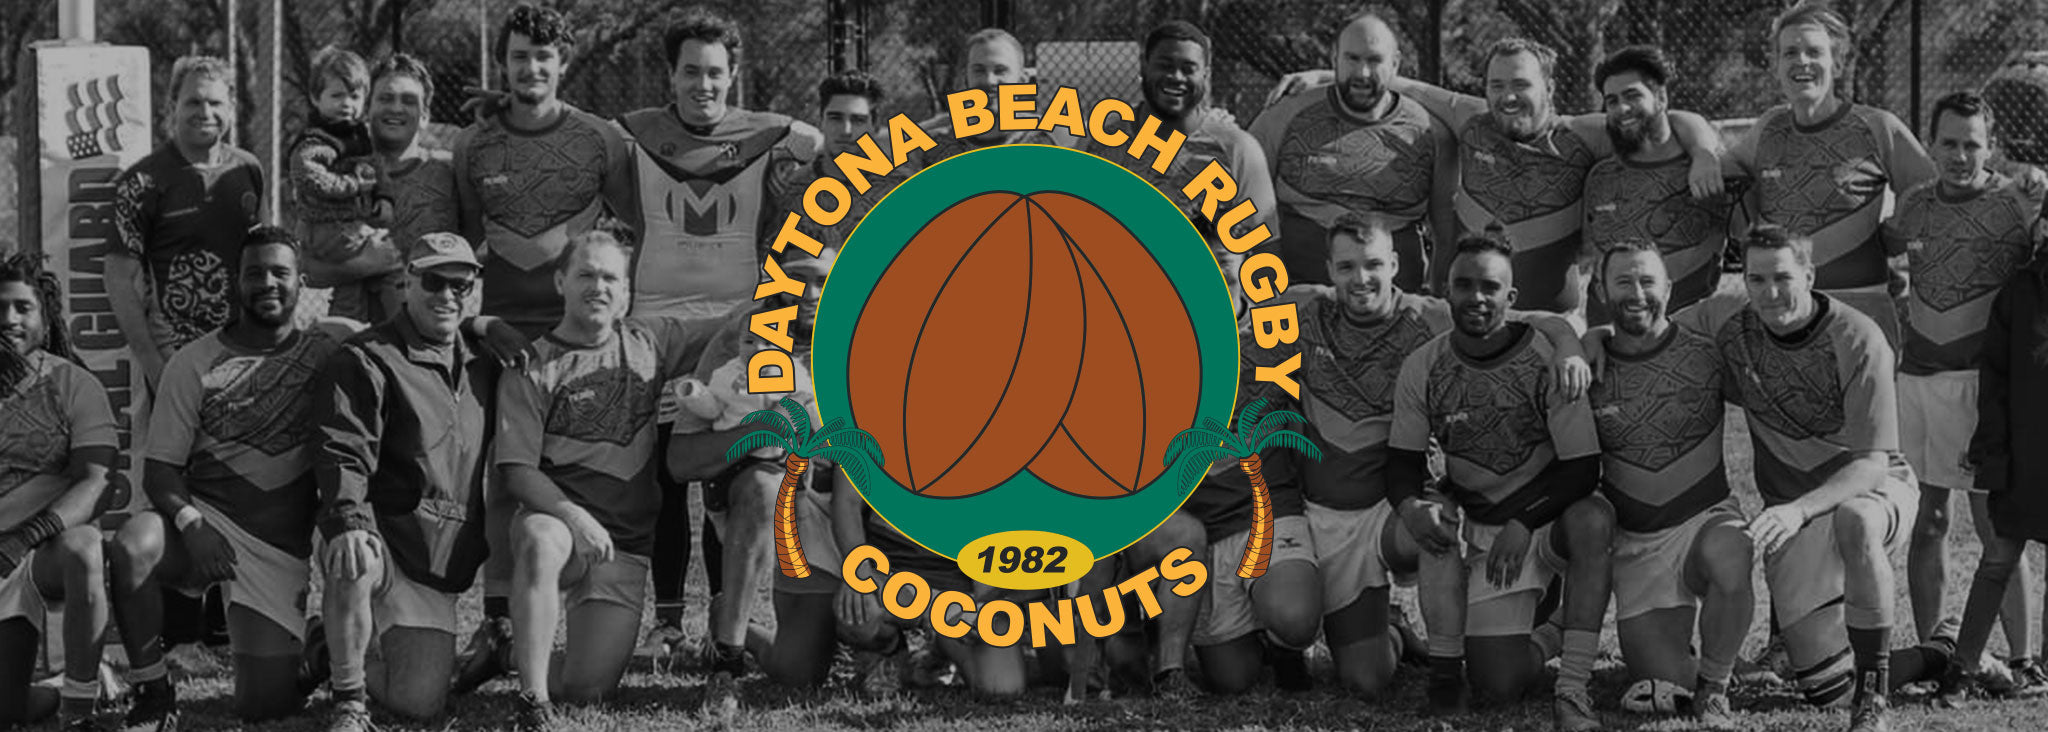 Daytona Beach Rugby